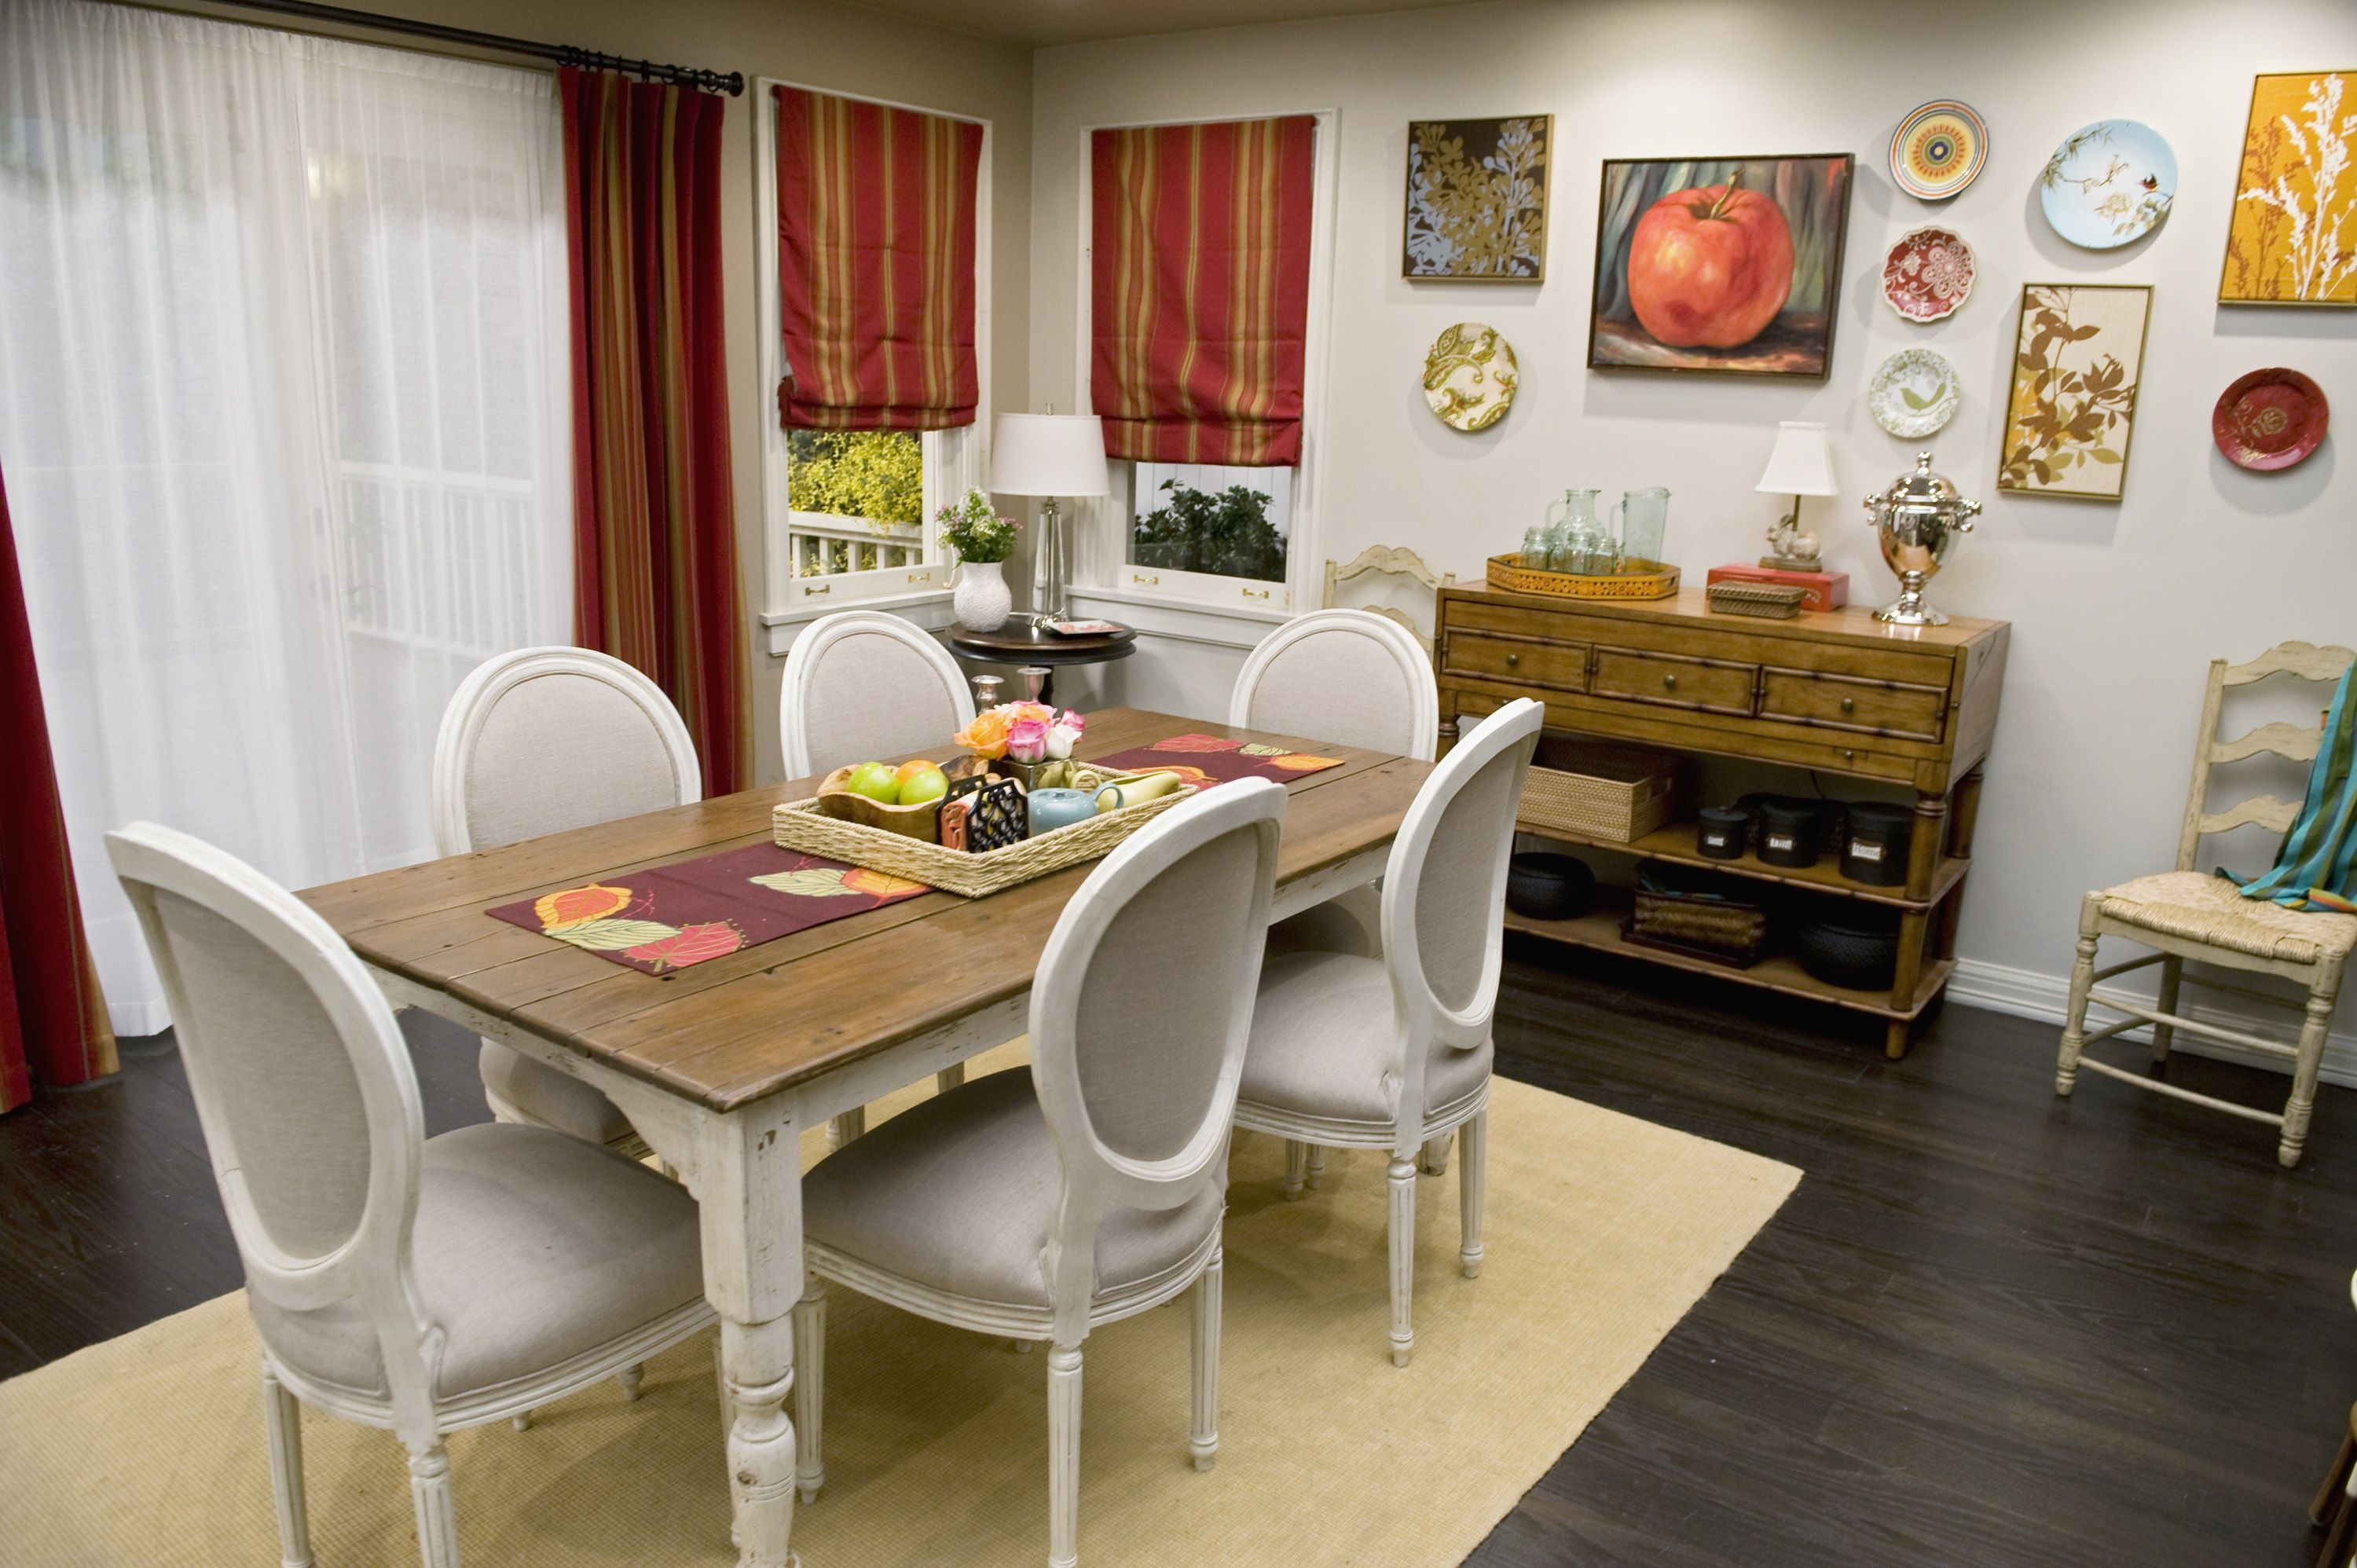 Great Dining Room From Modern Family Set     Like The Wall (eclectic Mix Of